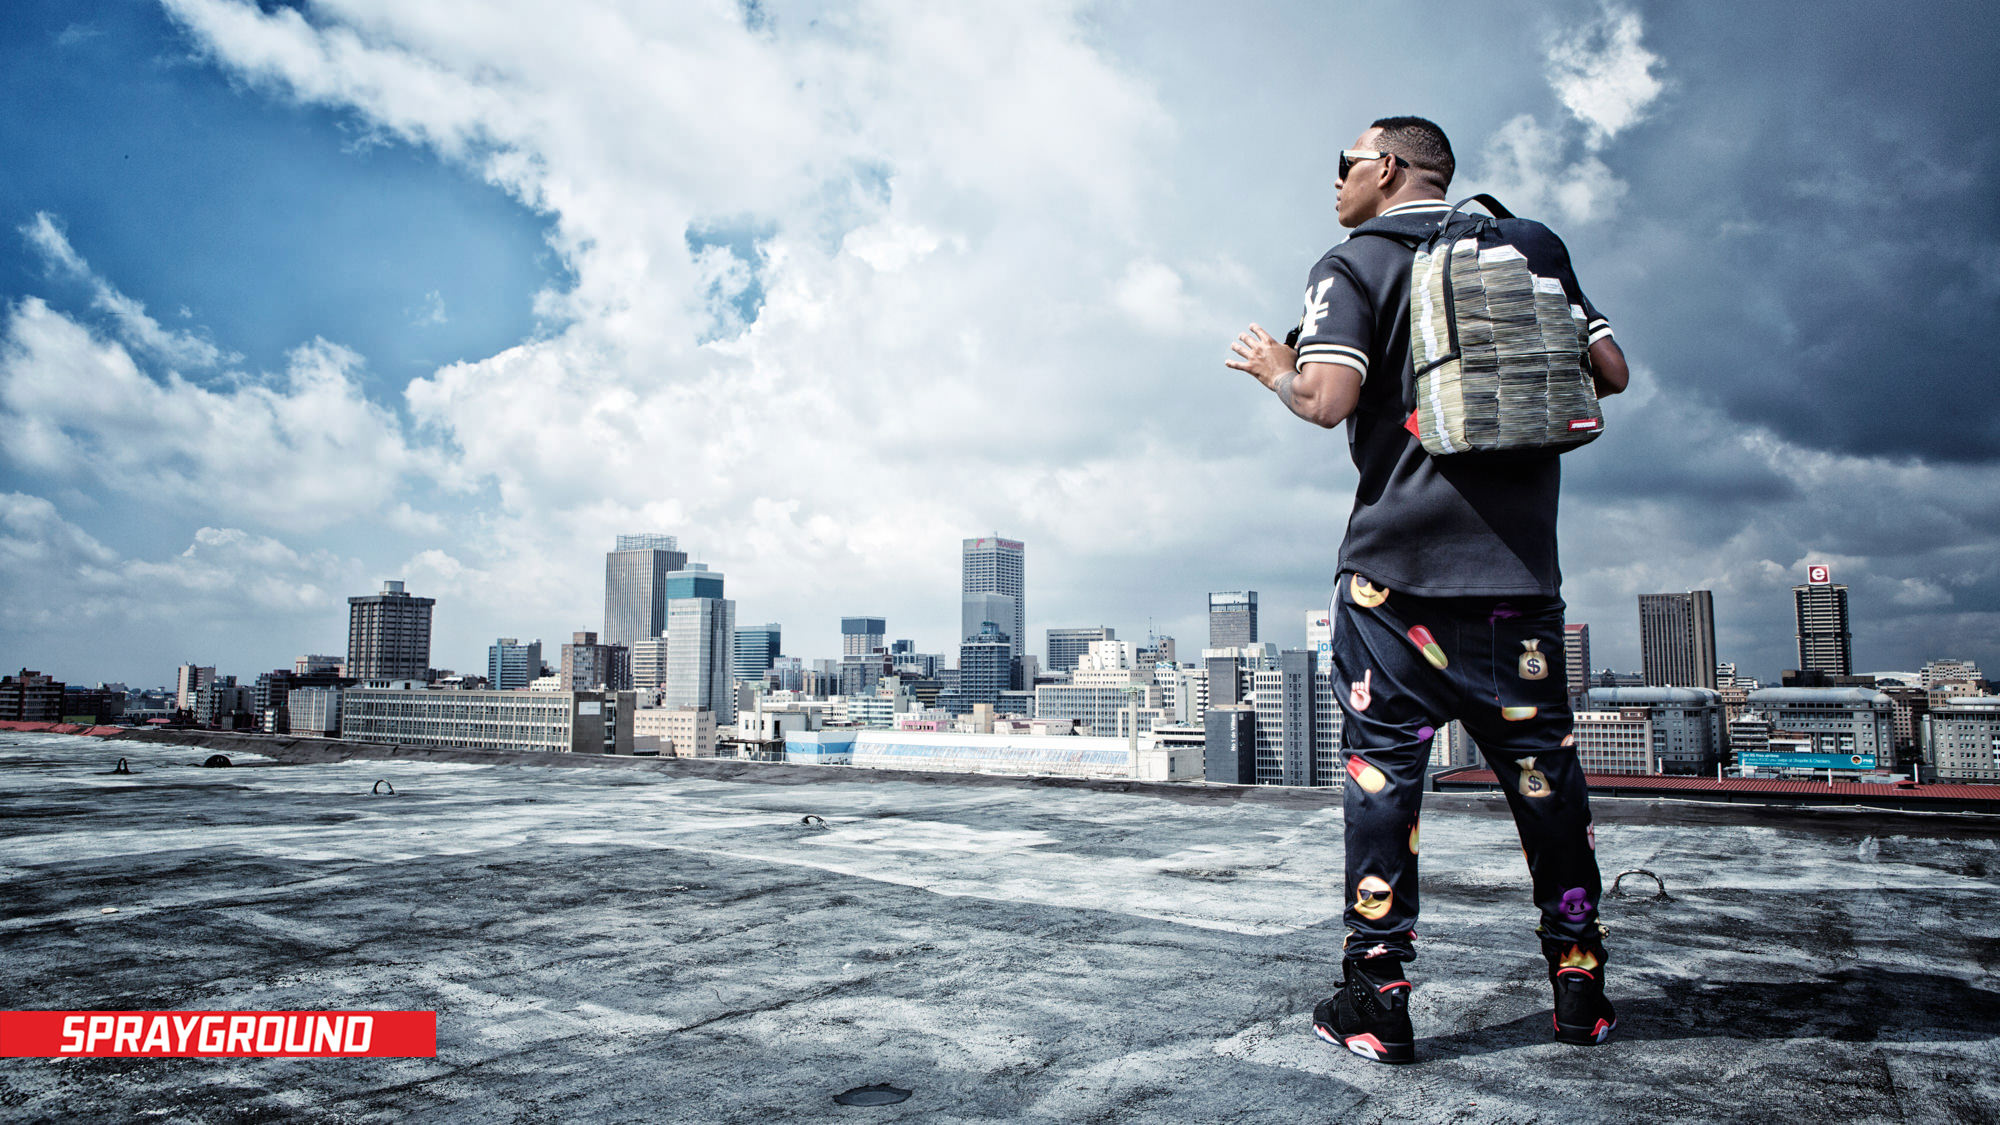 Image of Da L.E.S on Johannesburg CBD rooftop for Sprayground's Africa Launch by Michelle Wastie Photography.